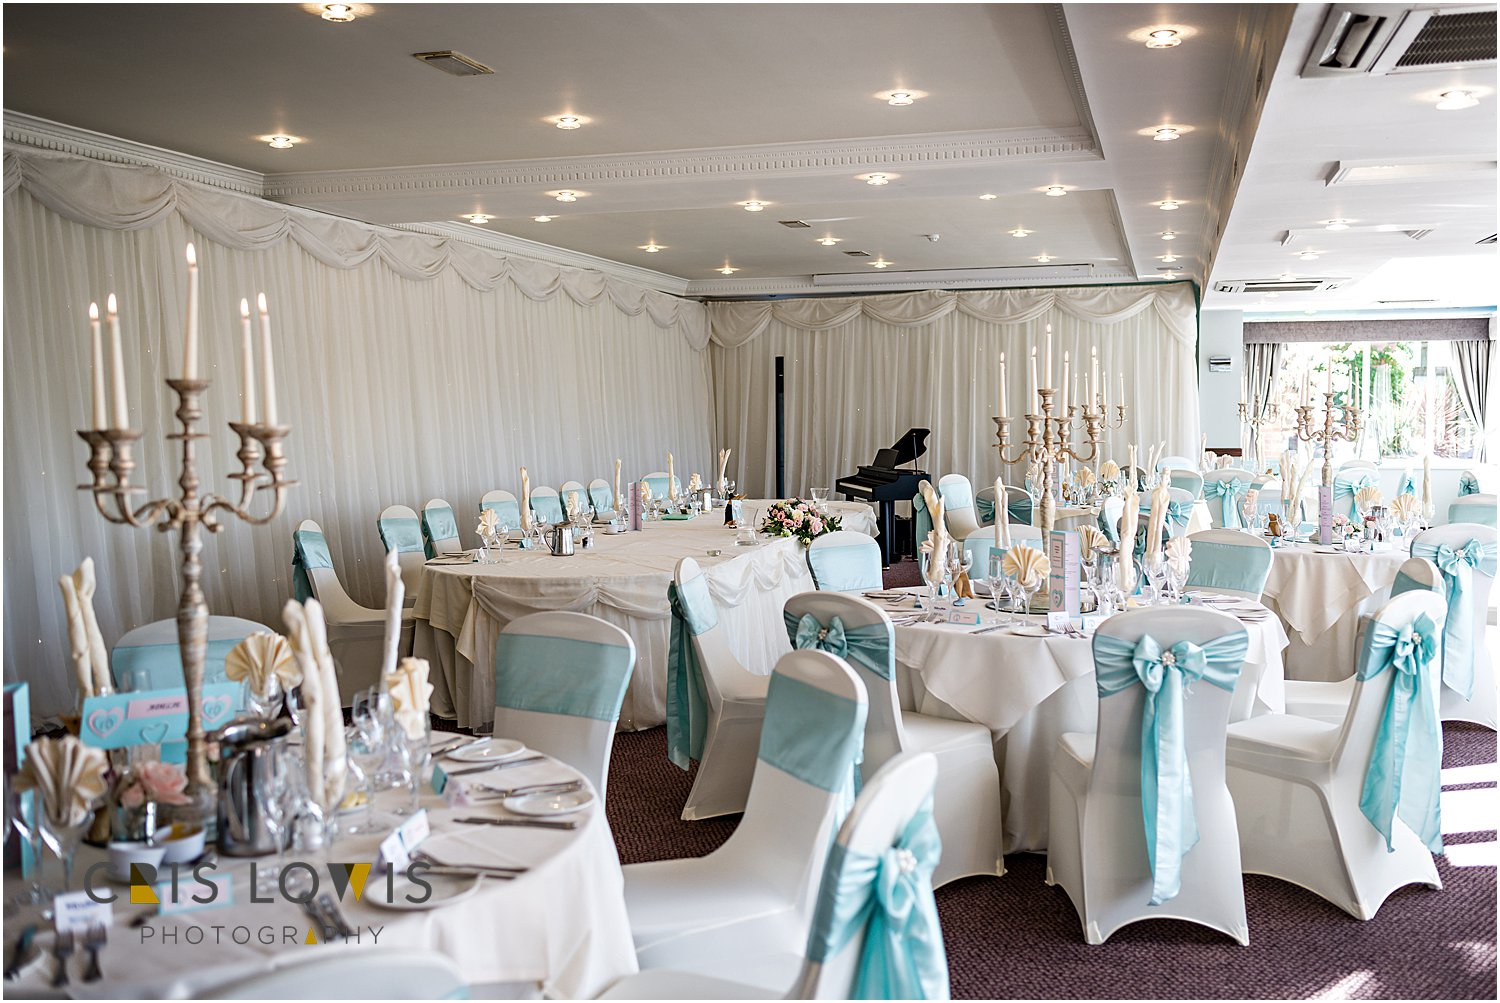 moat house wedding breakfast room